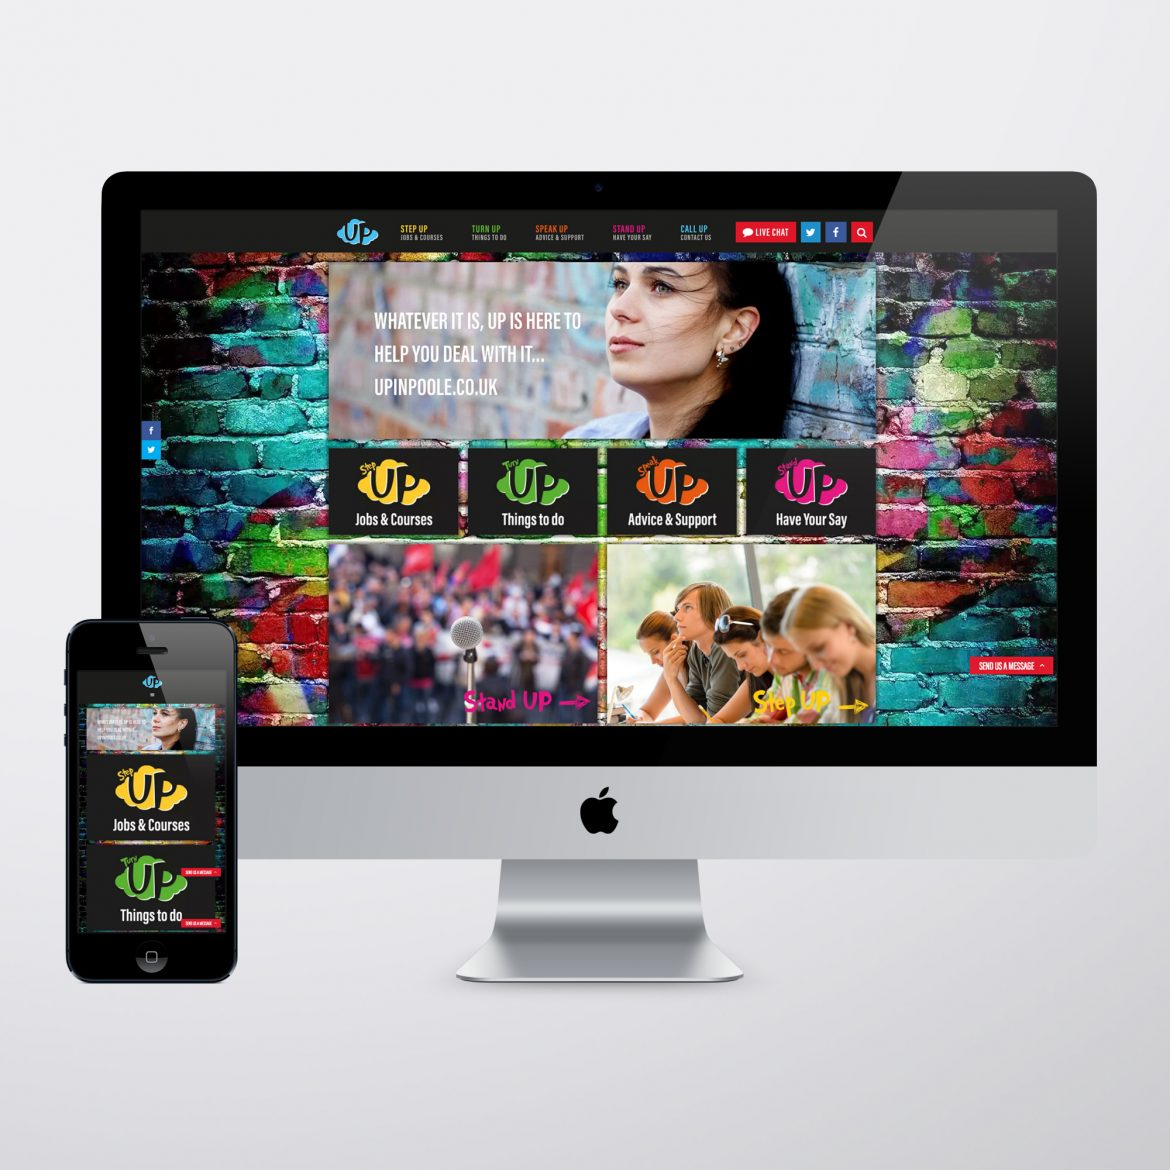 UP in Poole Web Design